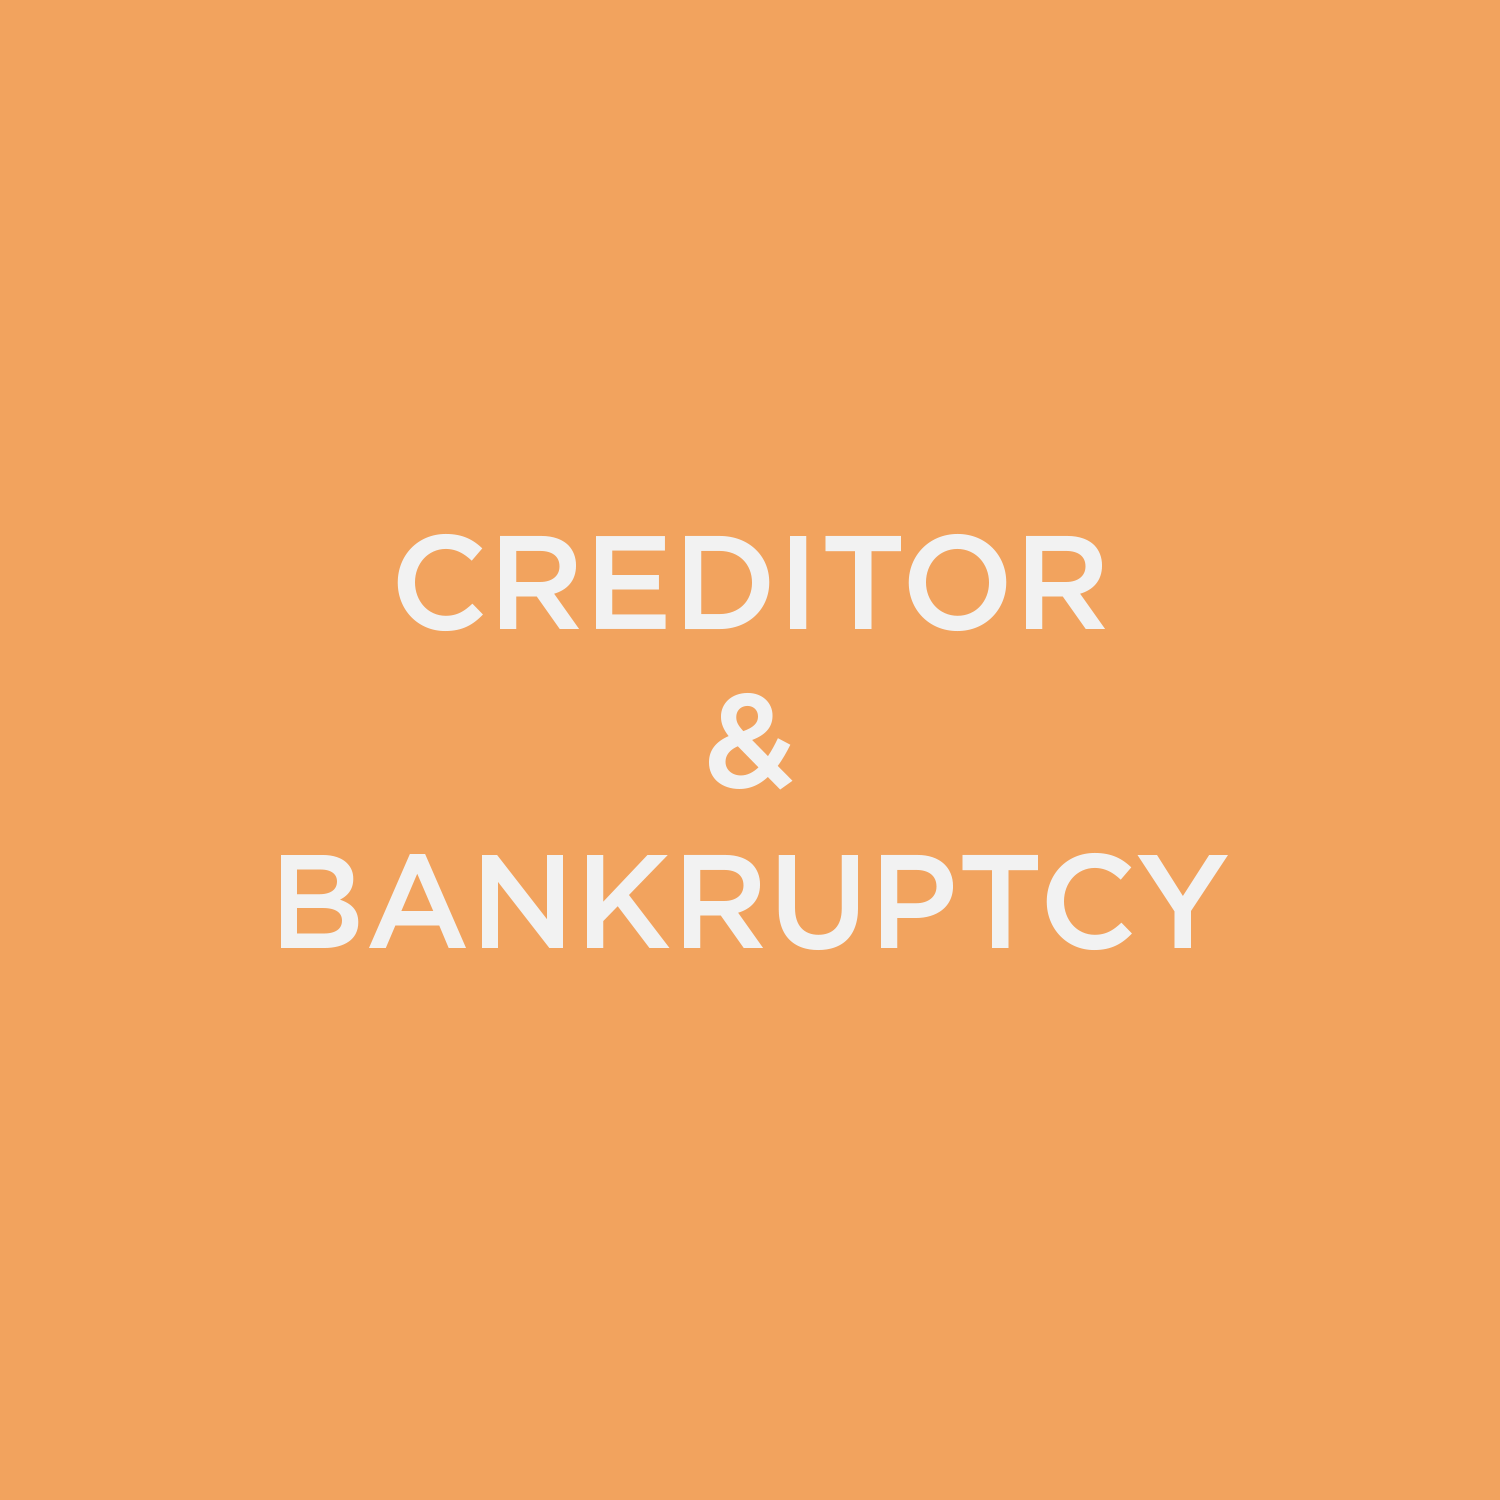 Creditor/Bankruptcy